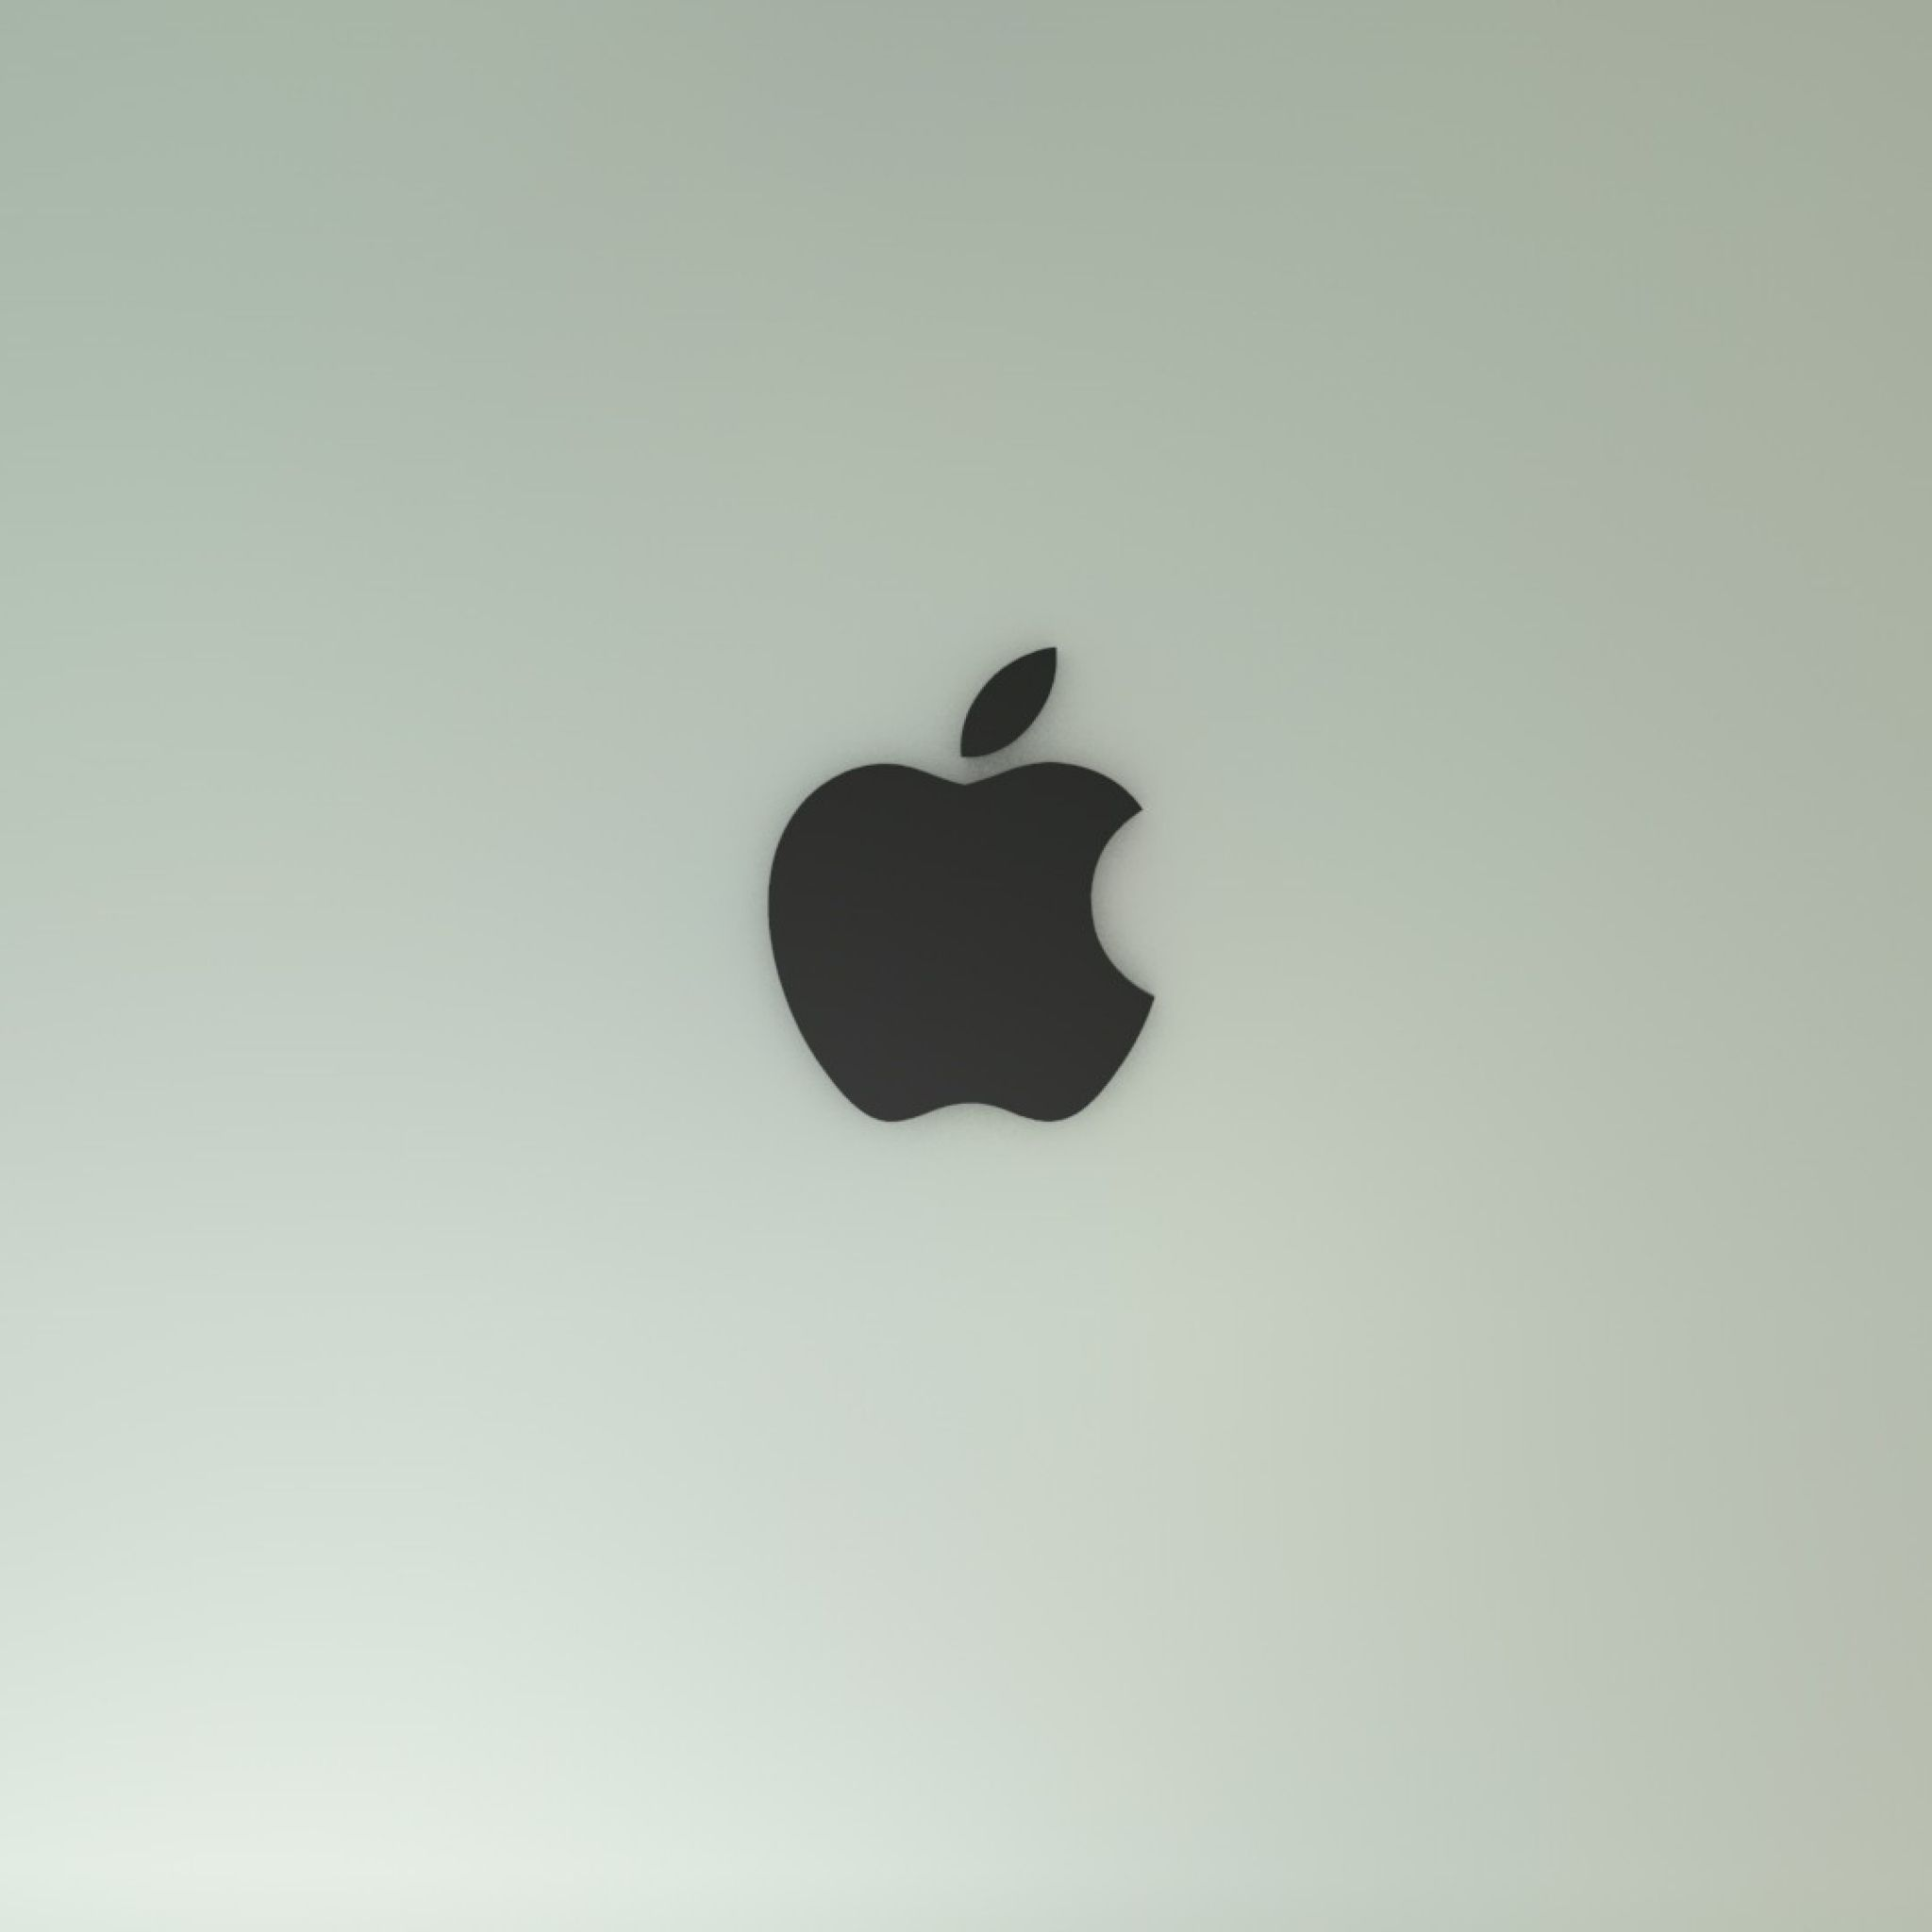 2048x2048 wallpaper apple mac brand background solid